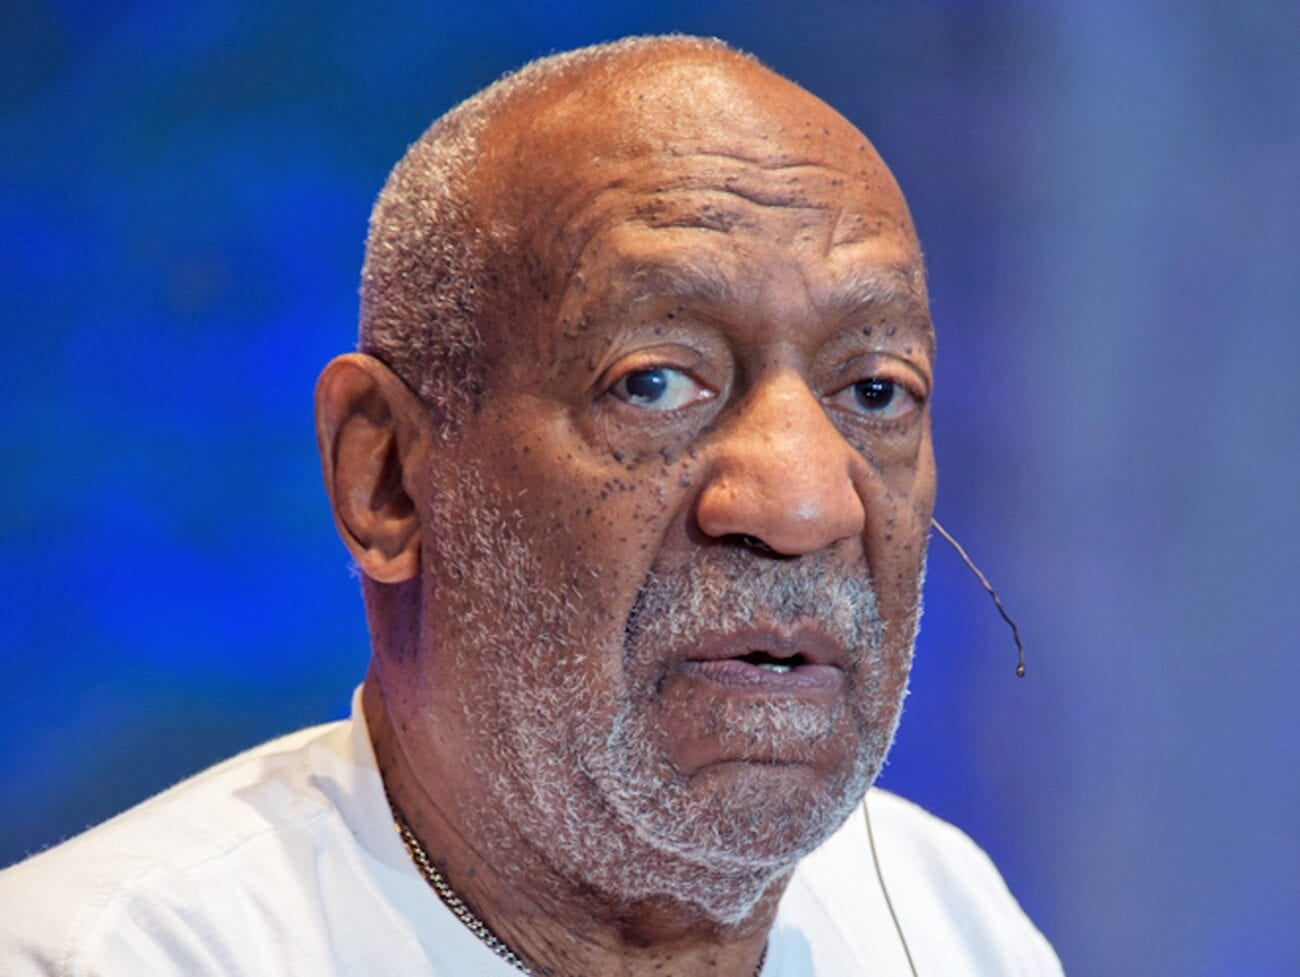 Bill Cosby was already sentenced, so how did he managed to get an appeal for his case? The PASC reopened the case after sentencing based on two arguments.